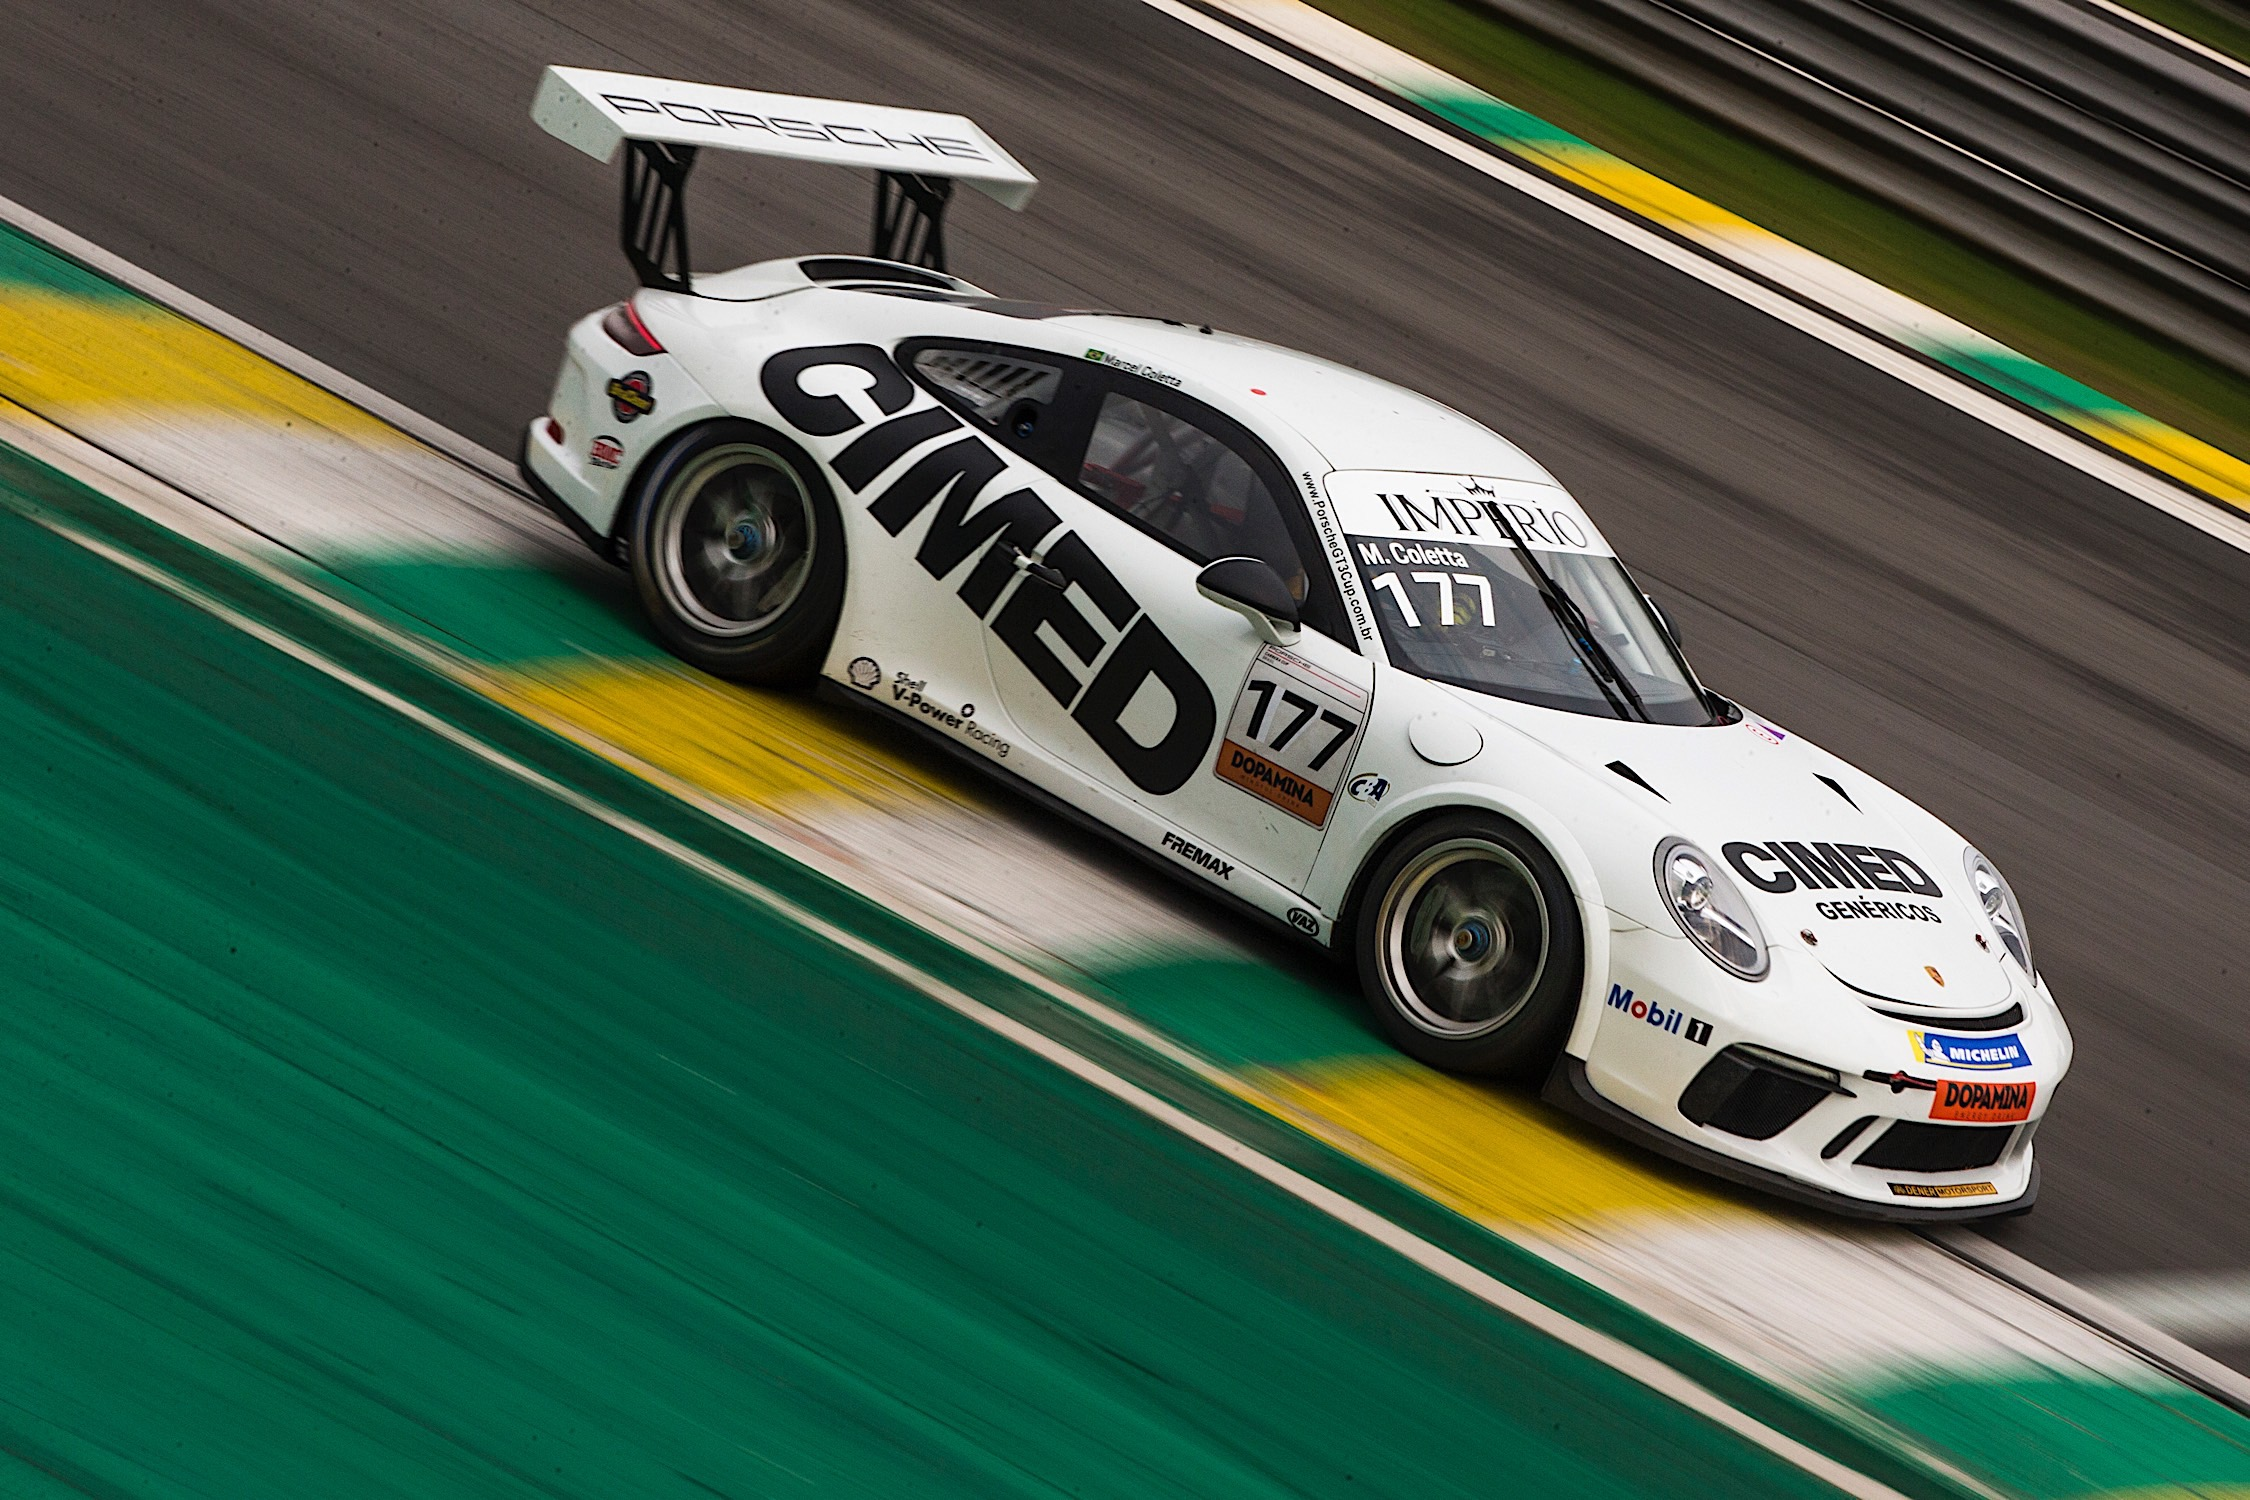 Photo of Porsche Cup – Marcel Coletta disputa título em final da Porsche Cup na preliminar do GP Brasil de F1